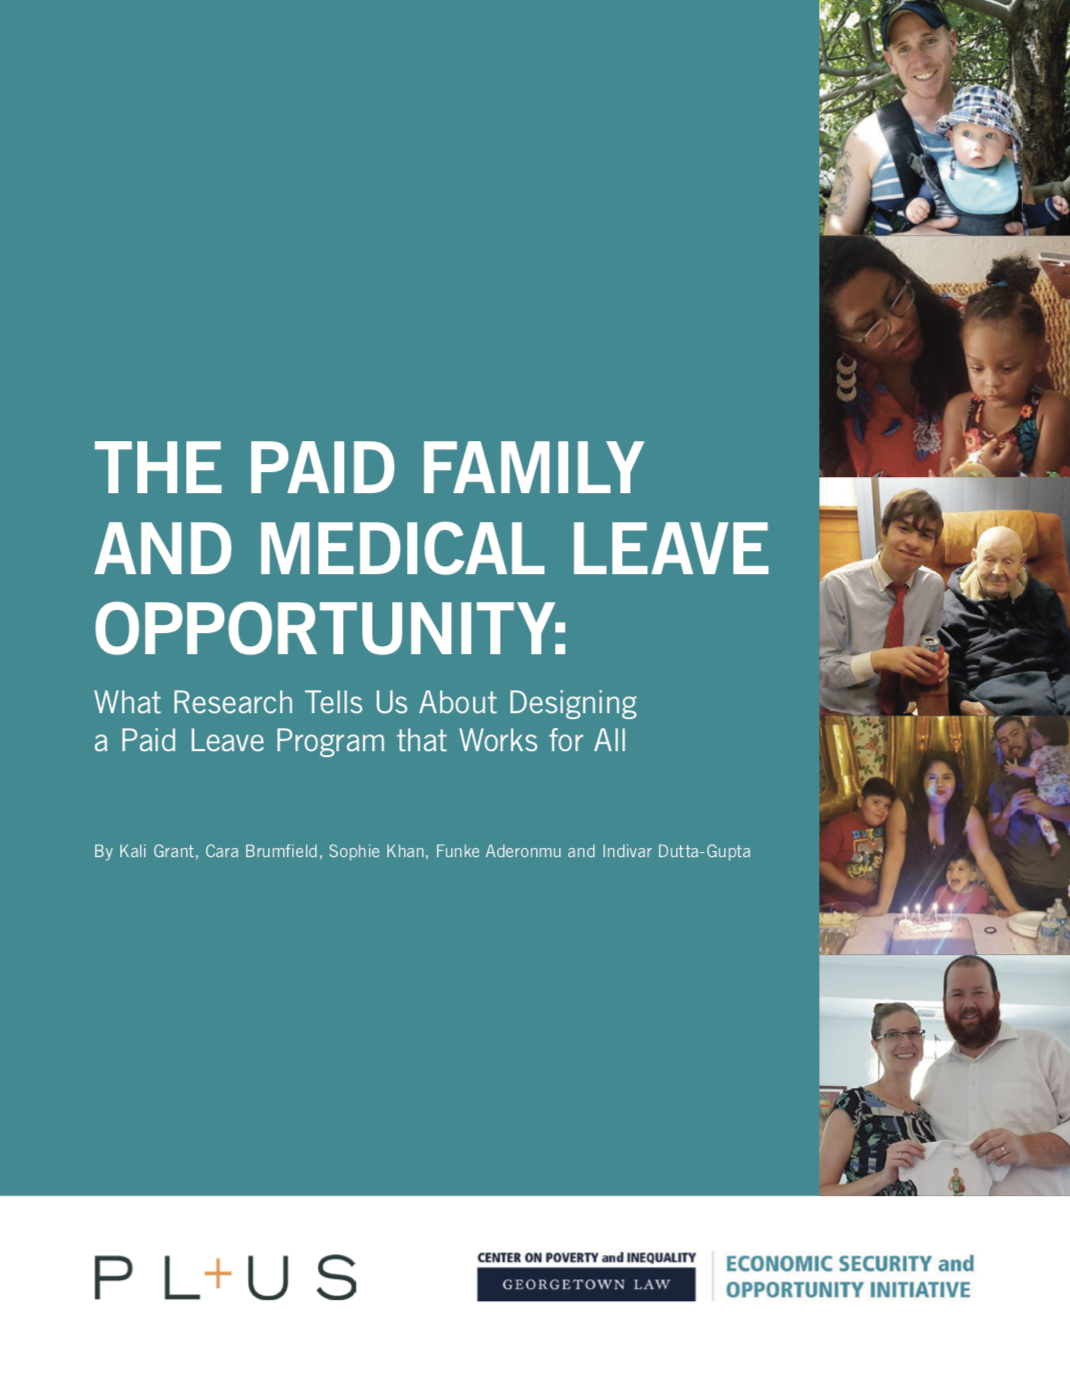 A New Approach To Paid Family Leave - We are in the middle of a caregiving crisis: millions of people in the US can't afford to be with their families in the moments that matter most. Yet, the boldness of proposed solutions have failed to match the scale of that crisis. Now, a new report in partnership with Georgetown Law Center on Poverty and Inequality outlines a new approach, based on what doctors and scientists say that families need.